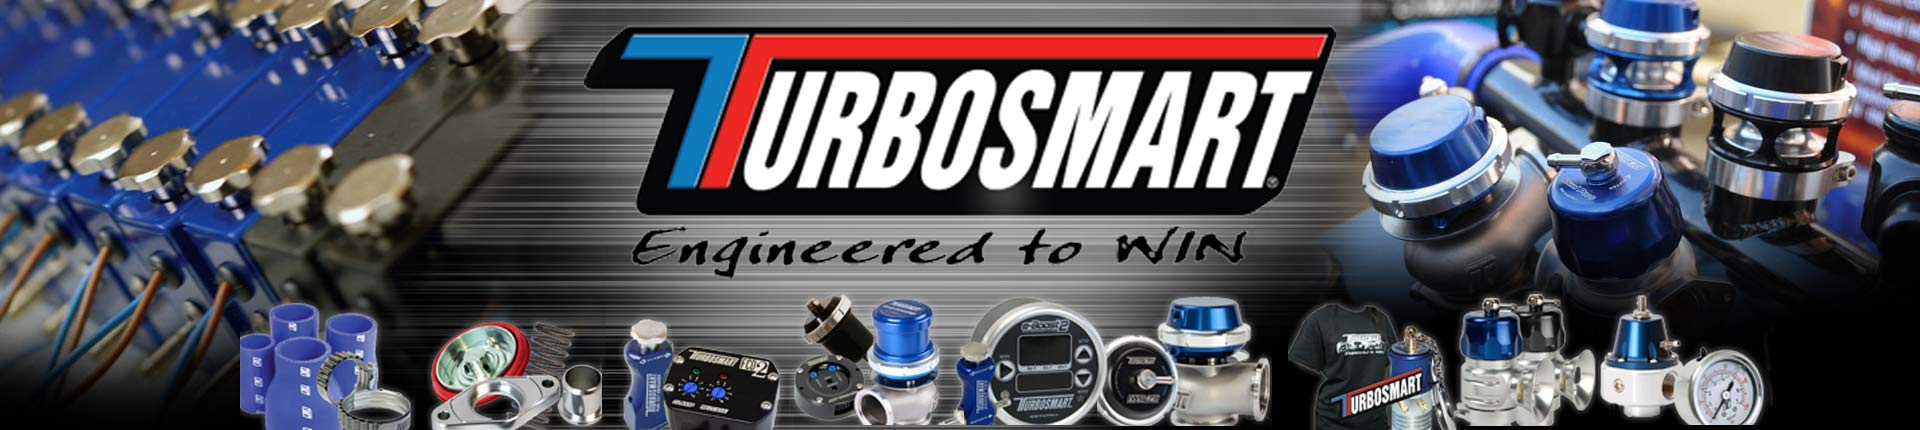 turbosmart performance vehicle products